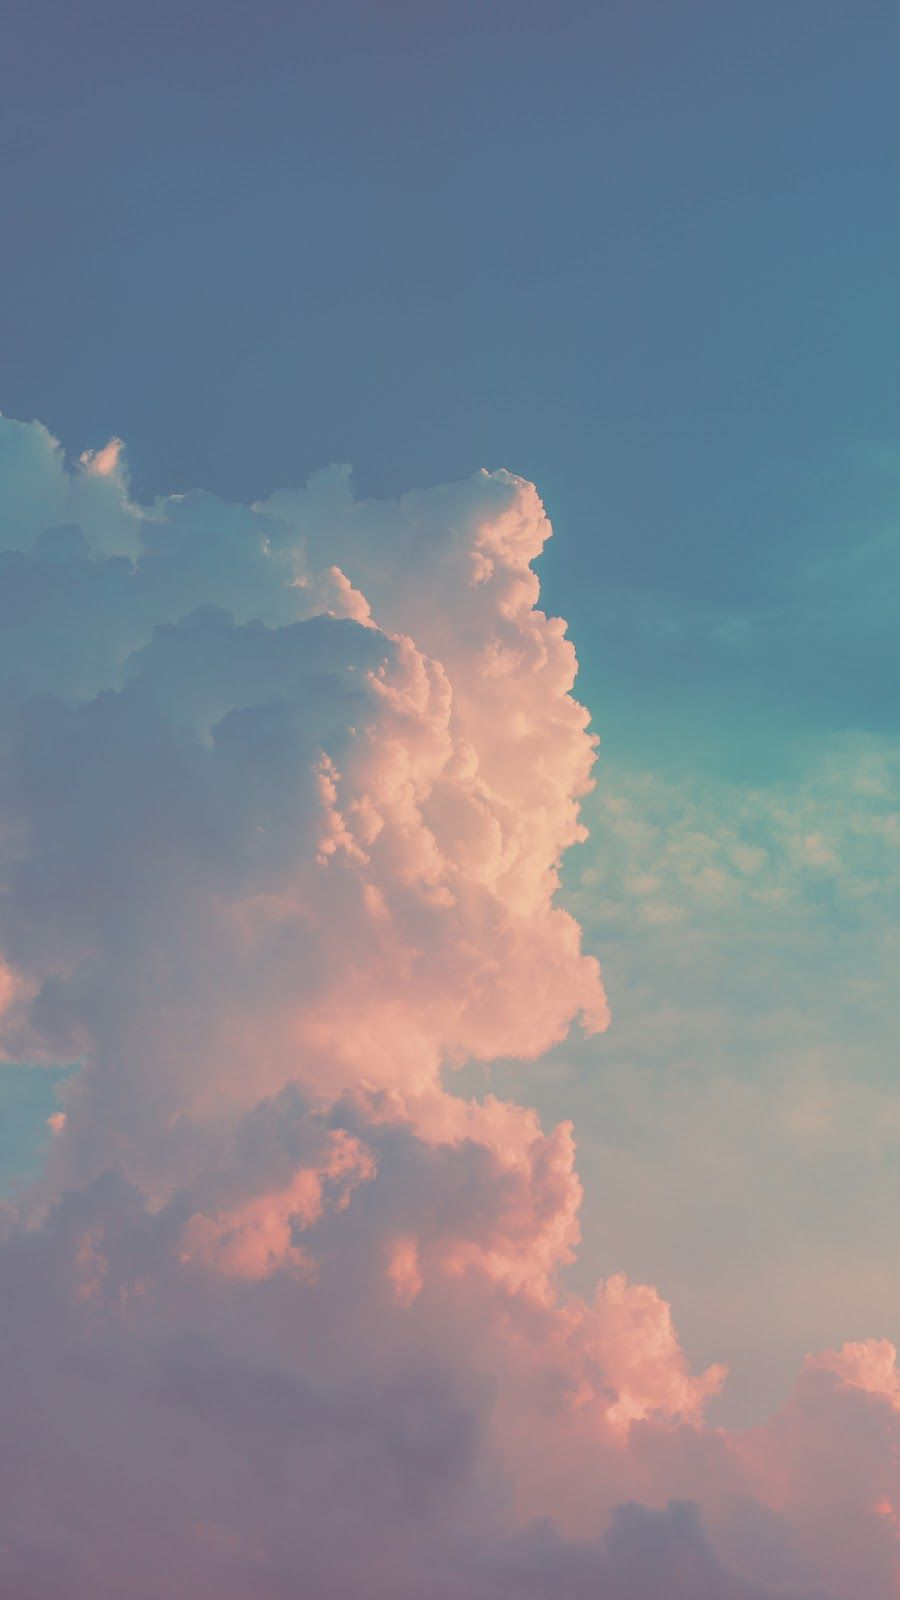 Clouds Aesthetic Tumblr Wallpapers - Top Free Clouds ...